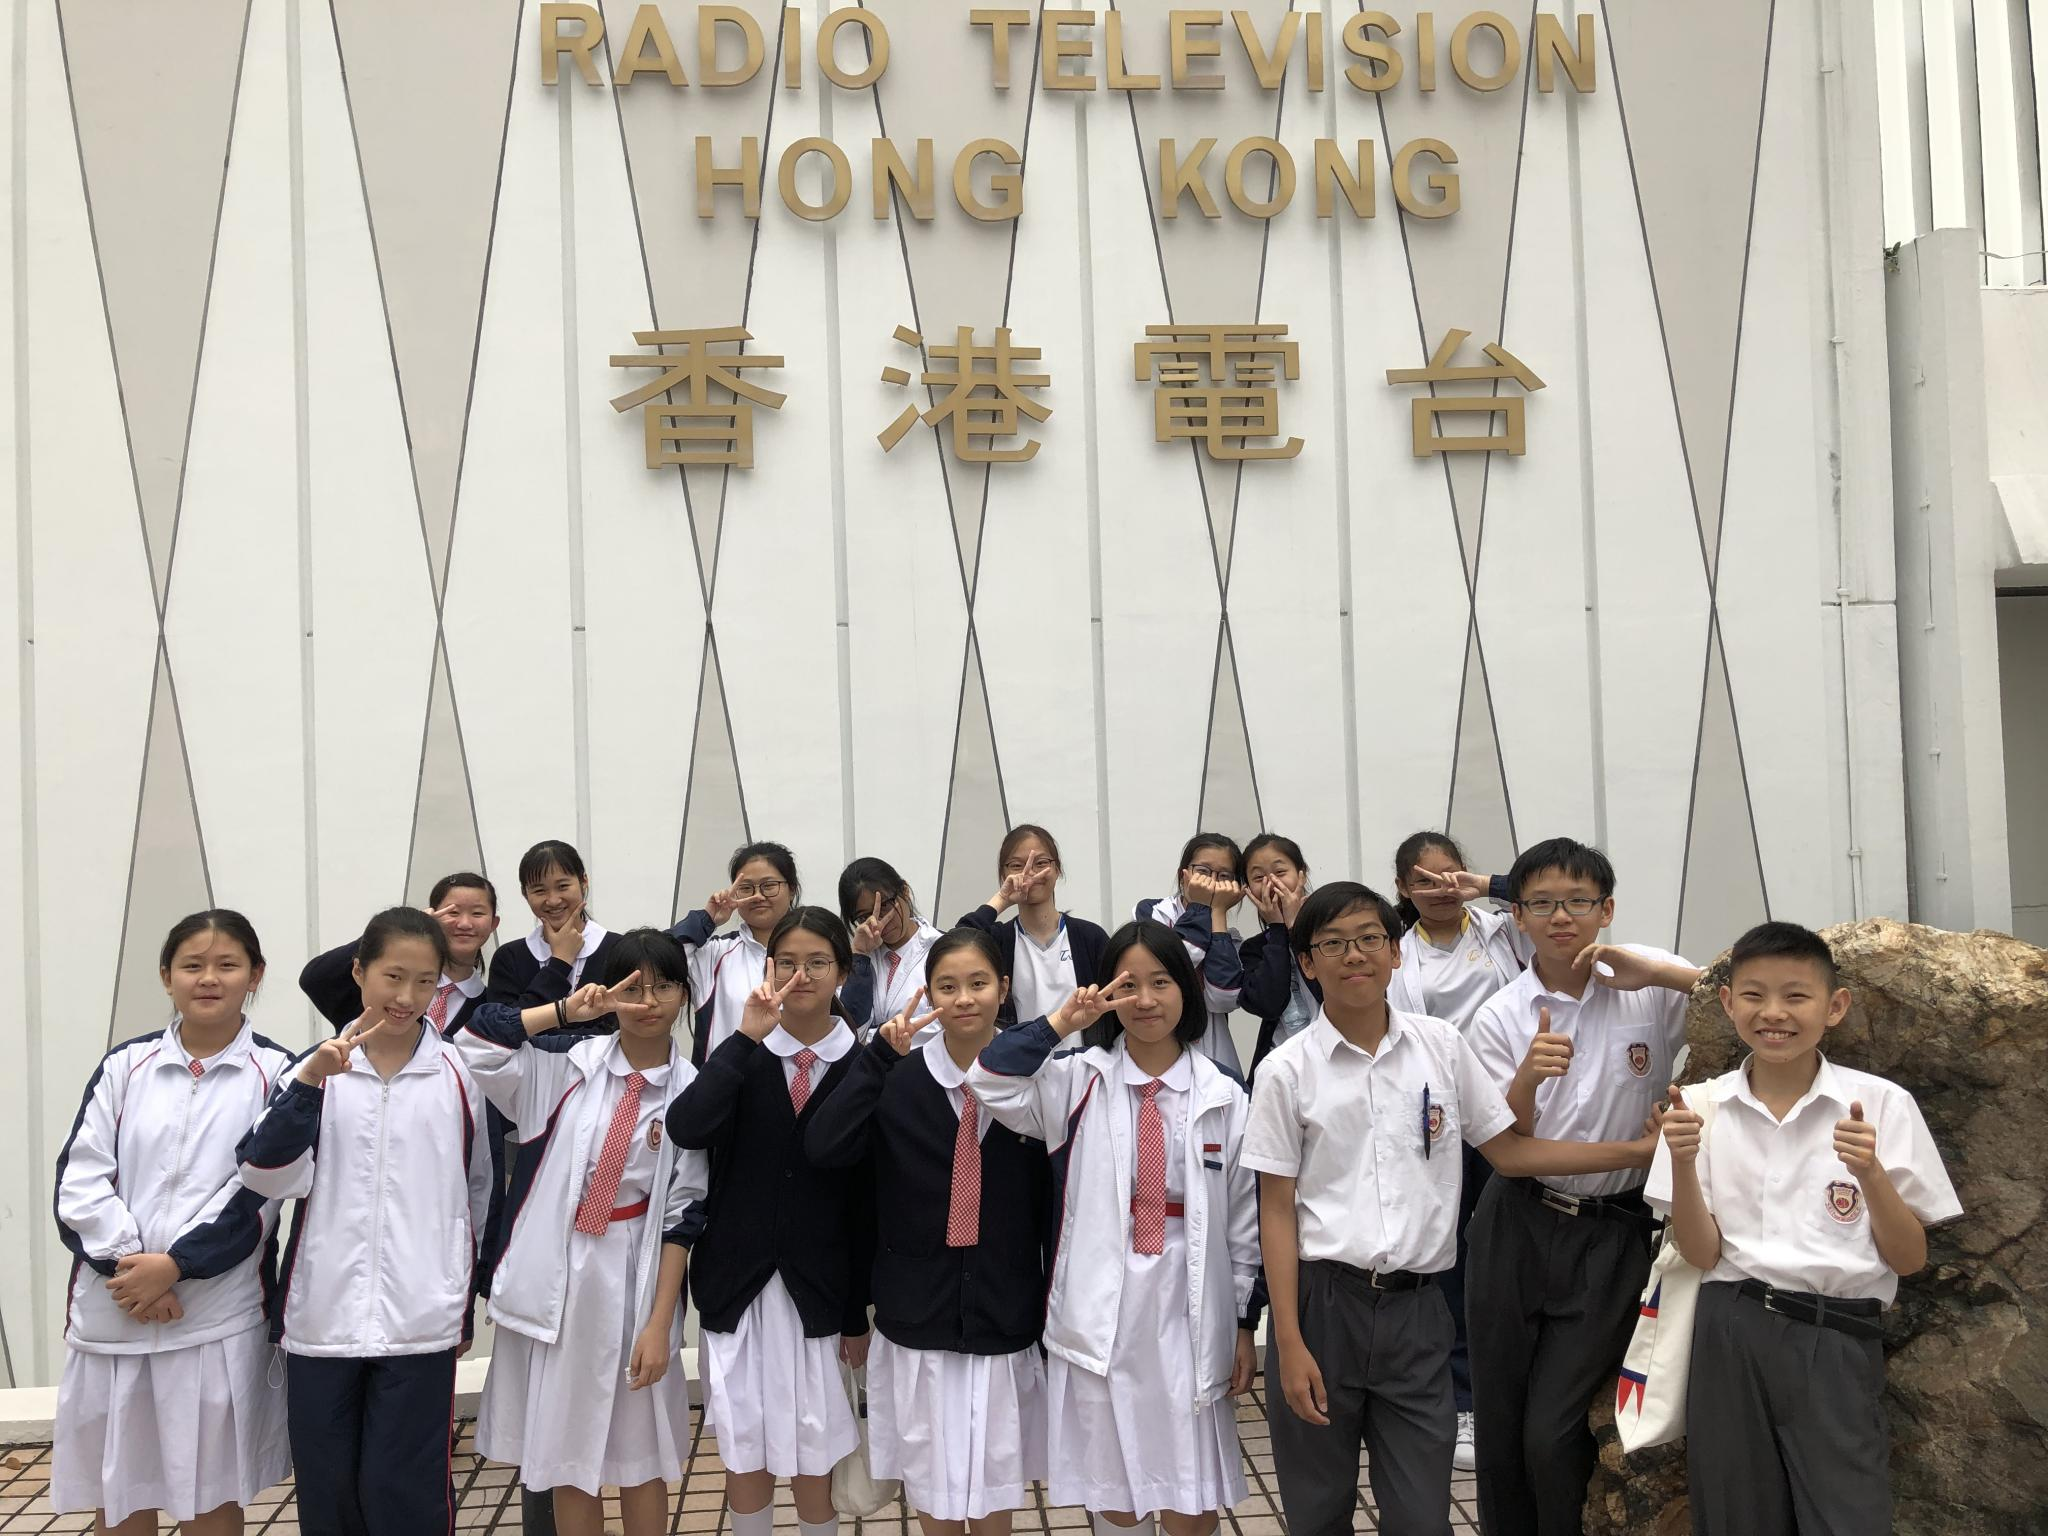 Our students took a photo in front of the entrance of the RTHK Broadcasting House.